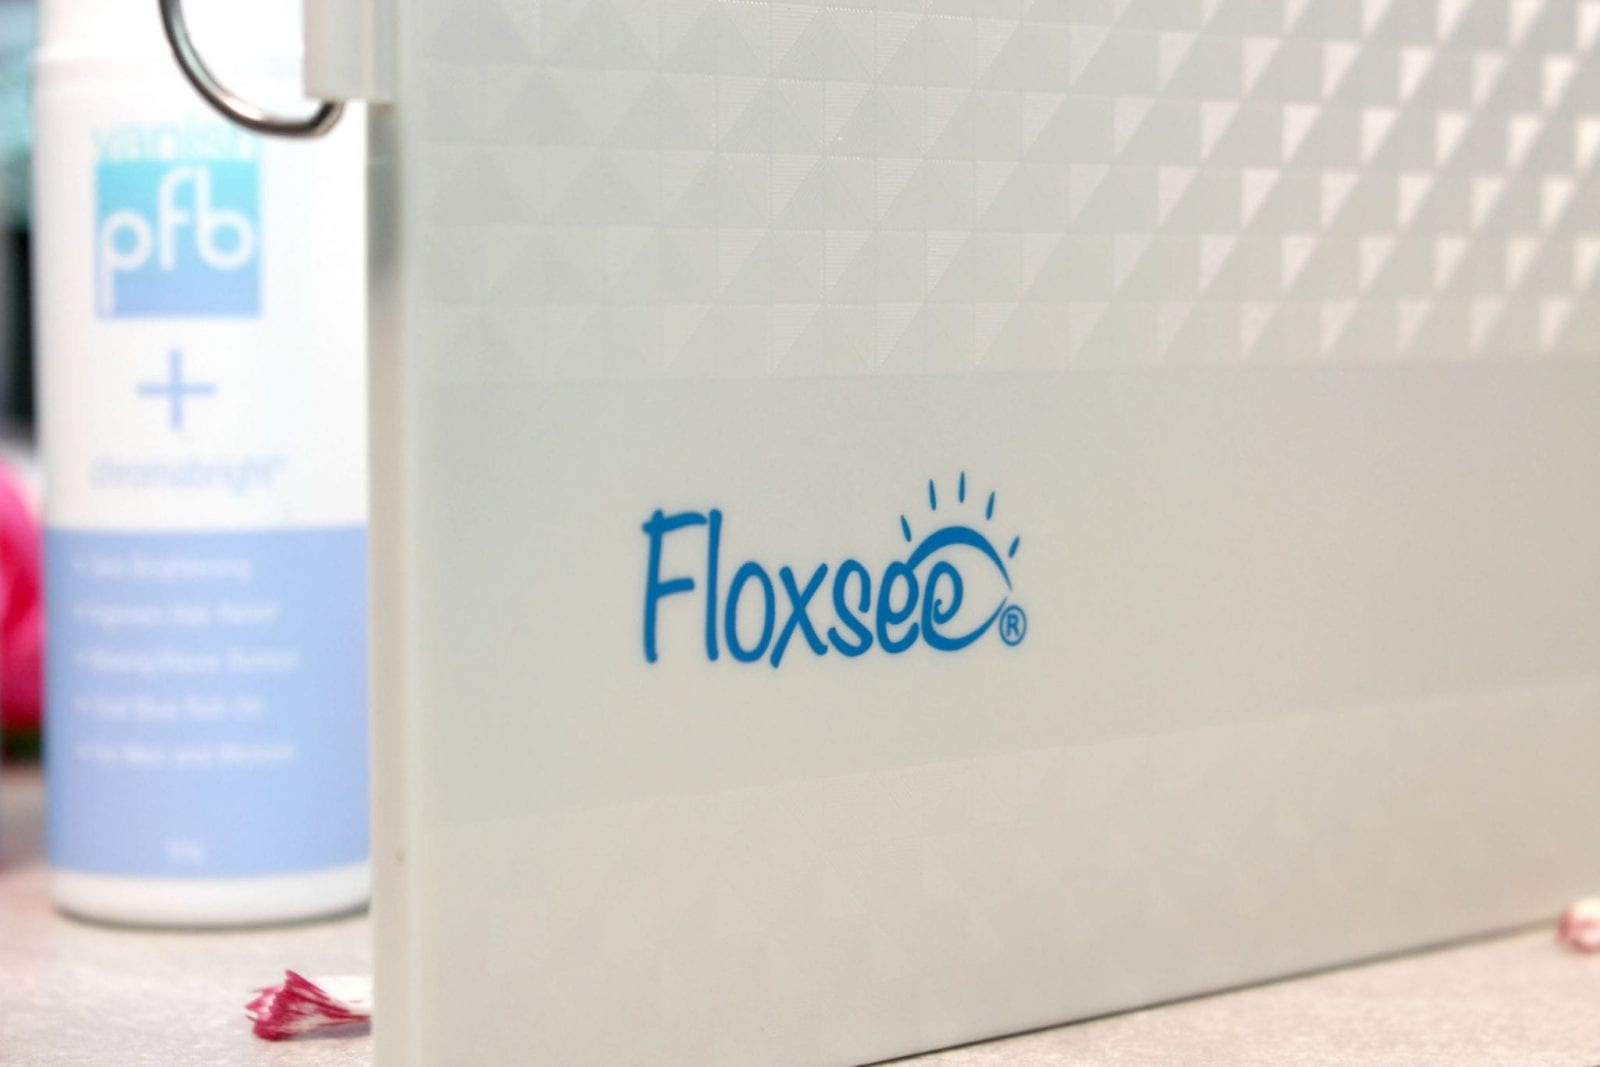 This is a close up of the Floxsee logo on the outside of one of the third mirrors.